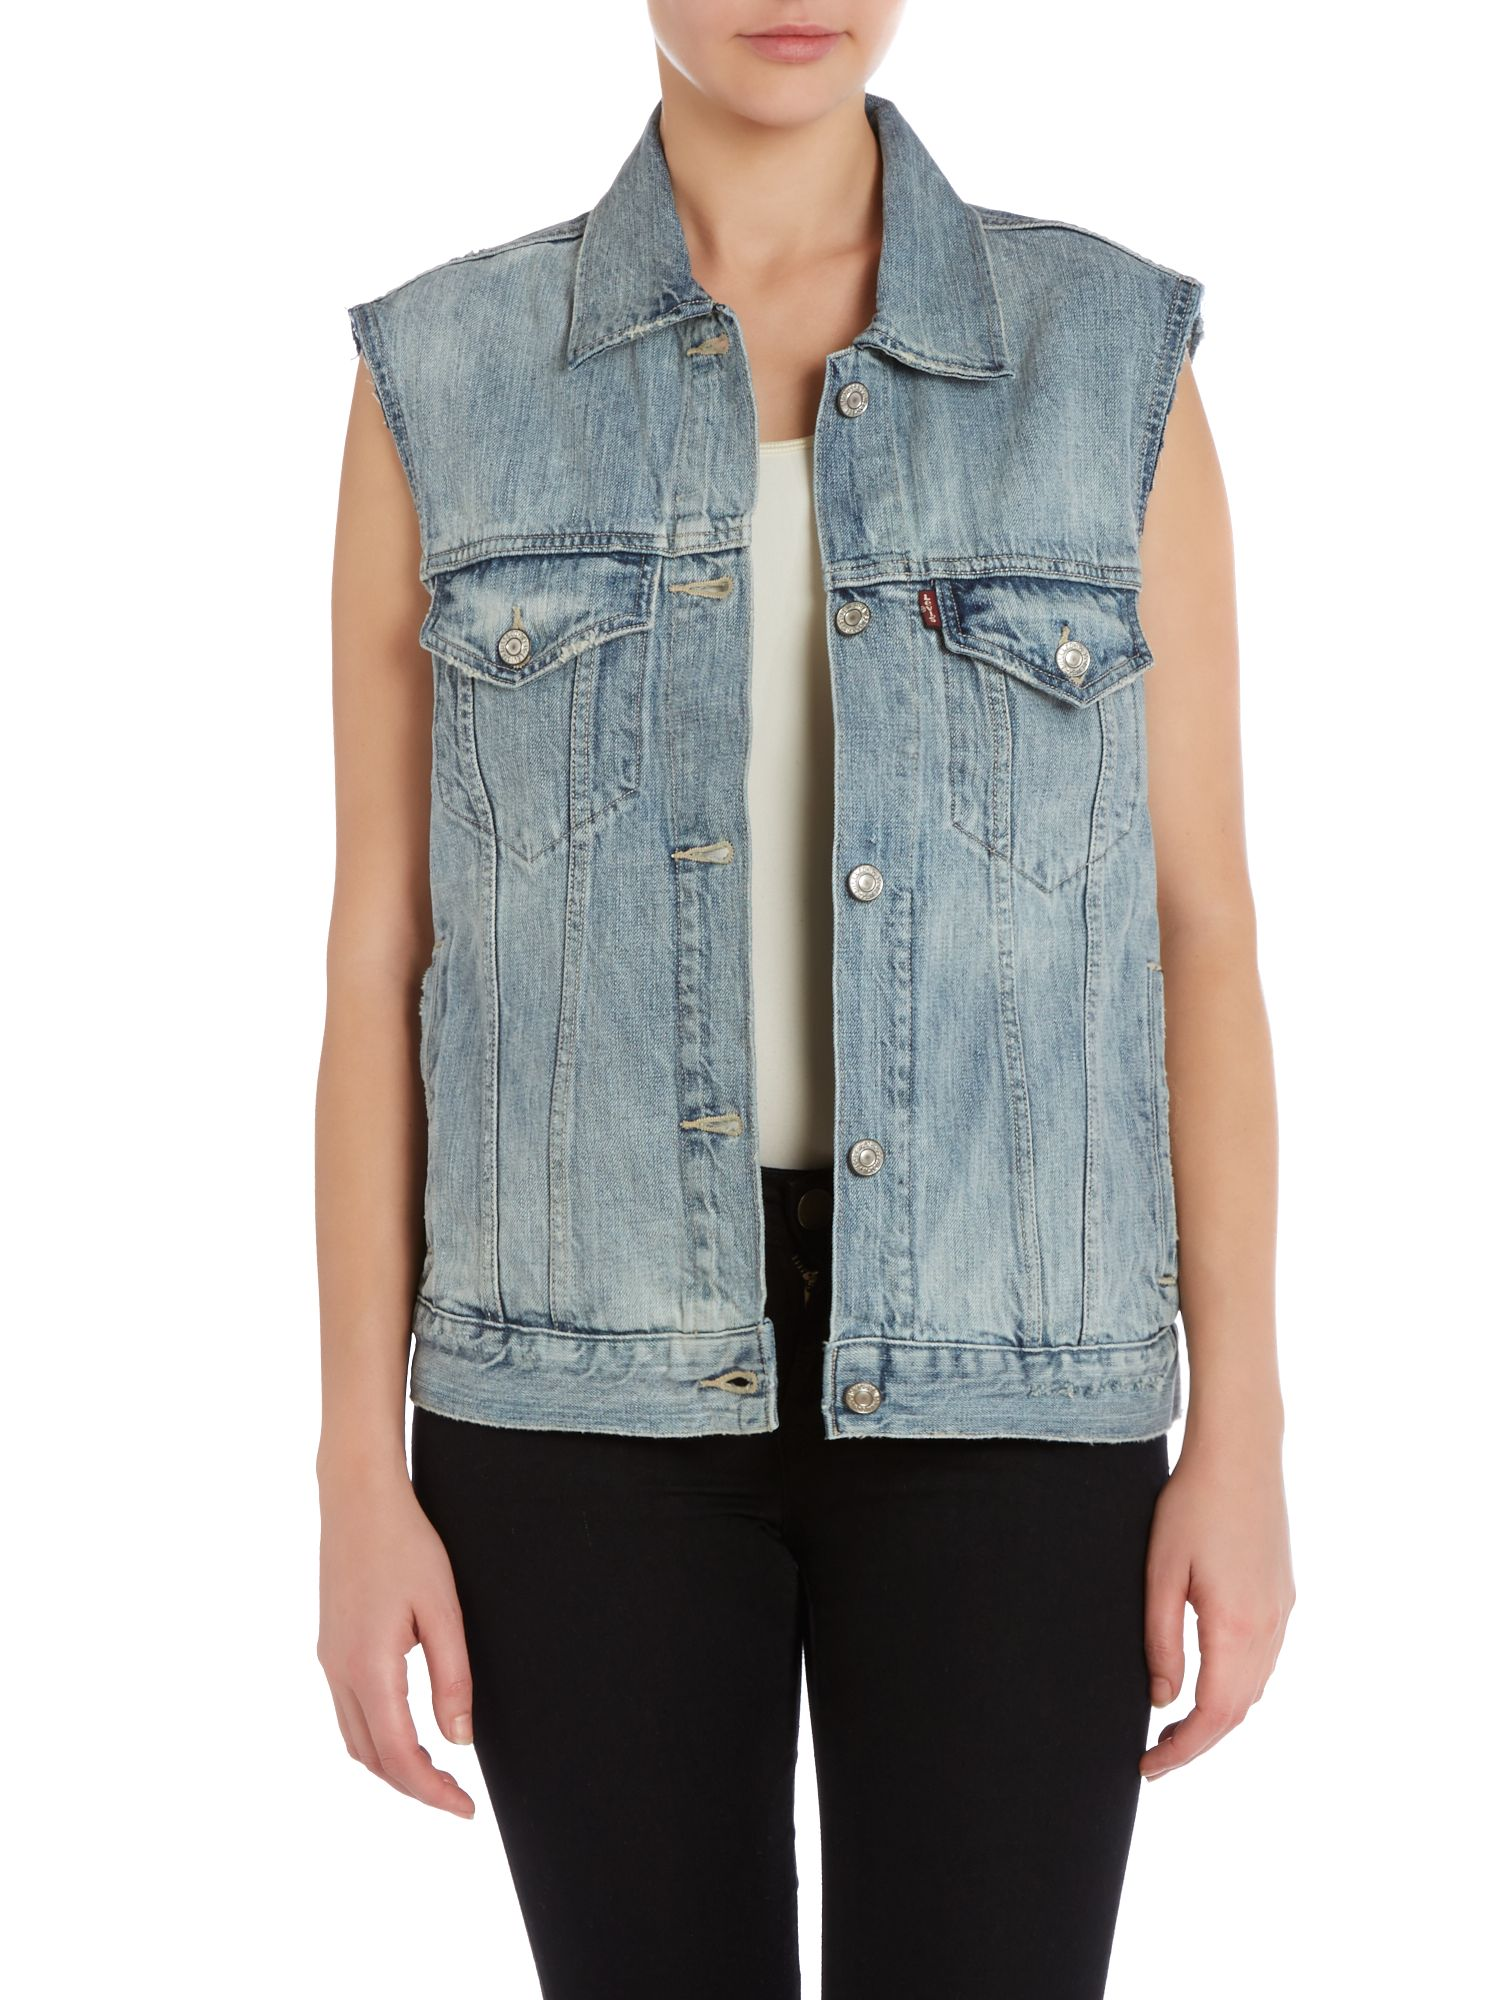 Sleeveless rick griffin vest in wave break